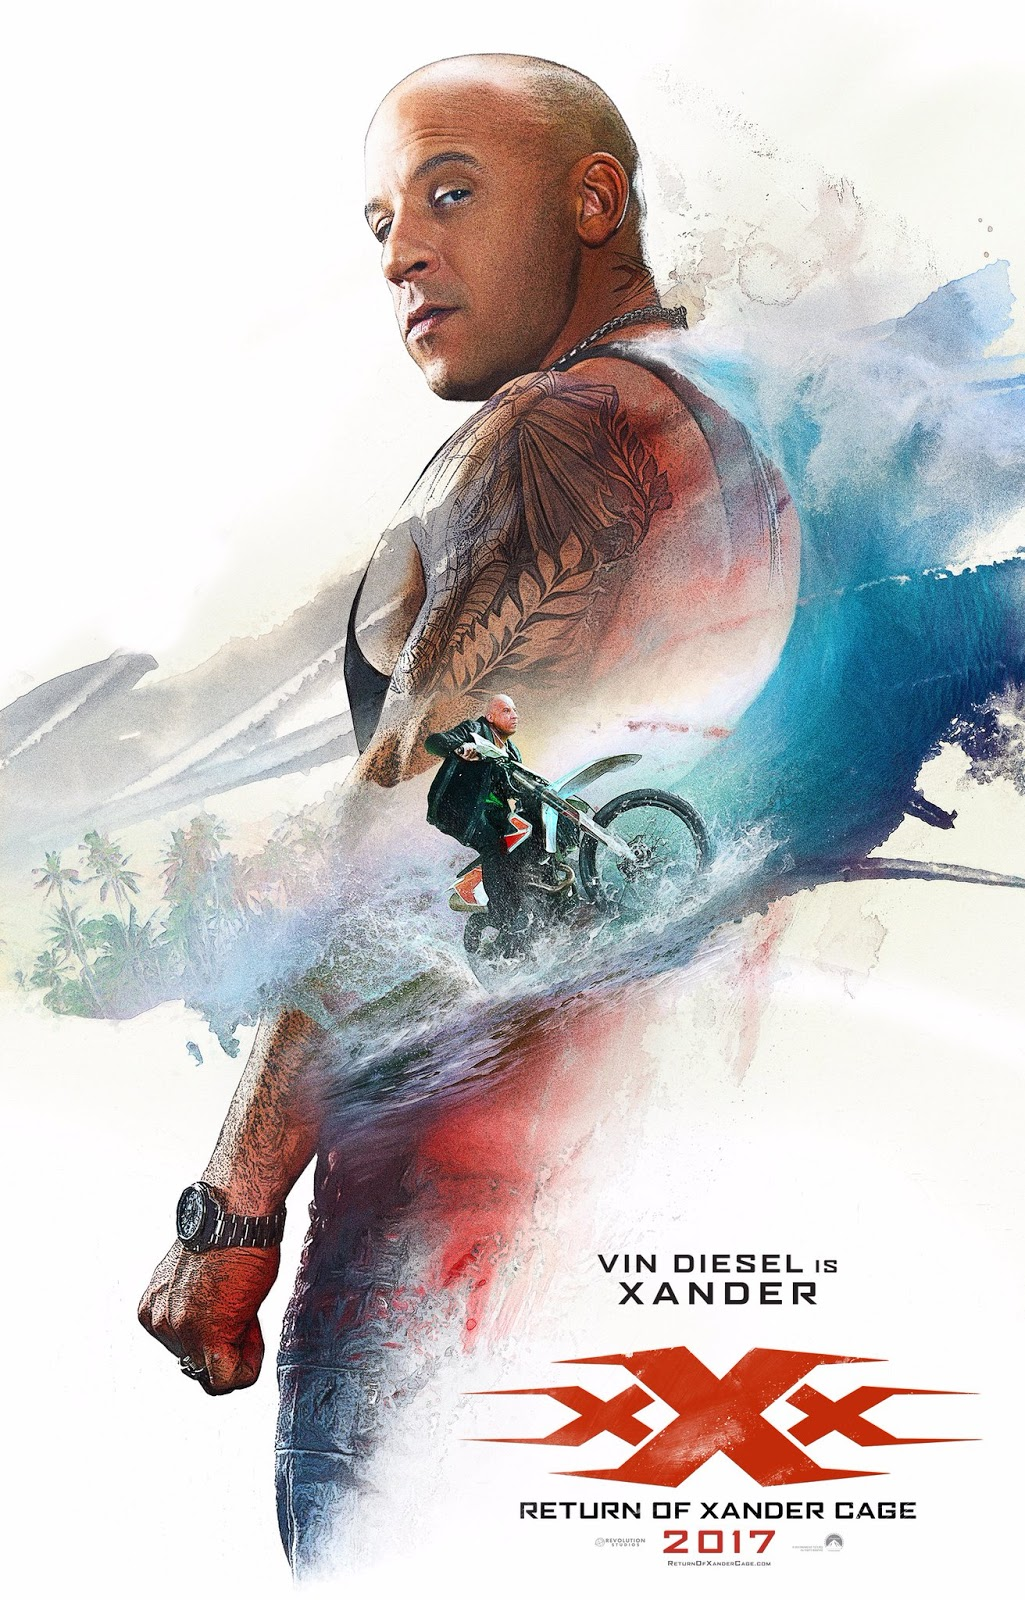 Vin diesel donnie yen ruby rose and deepika padukone take charge in the new xxx the return of xander cage trailer